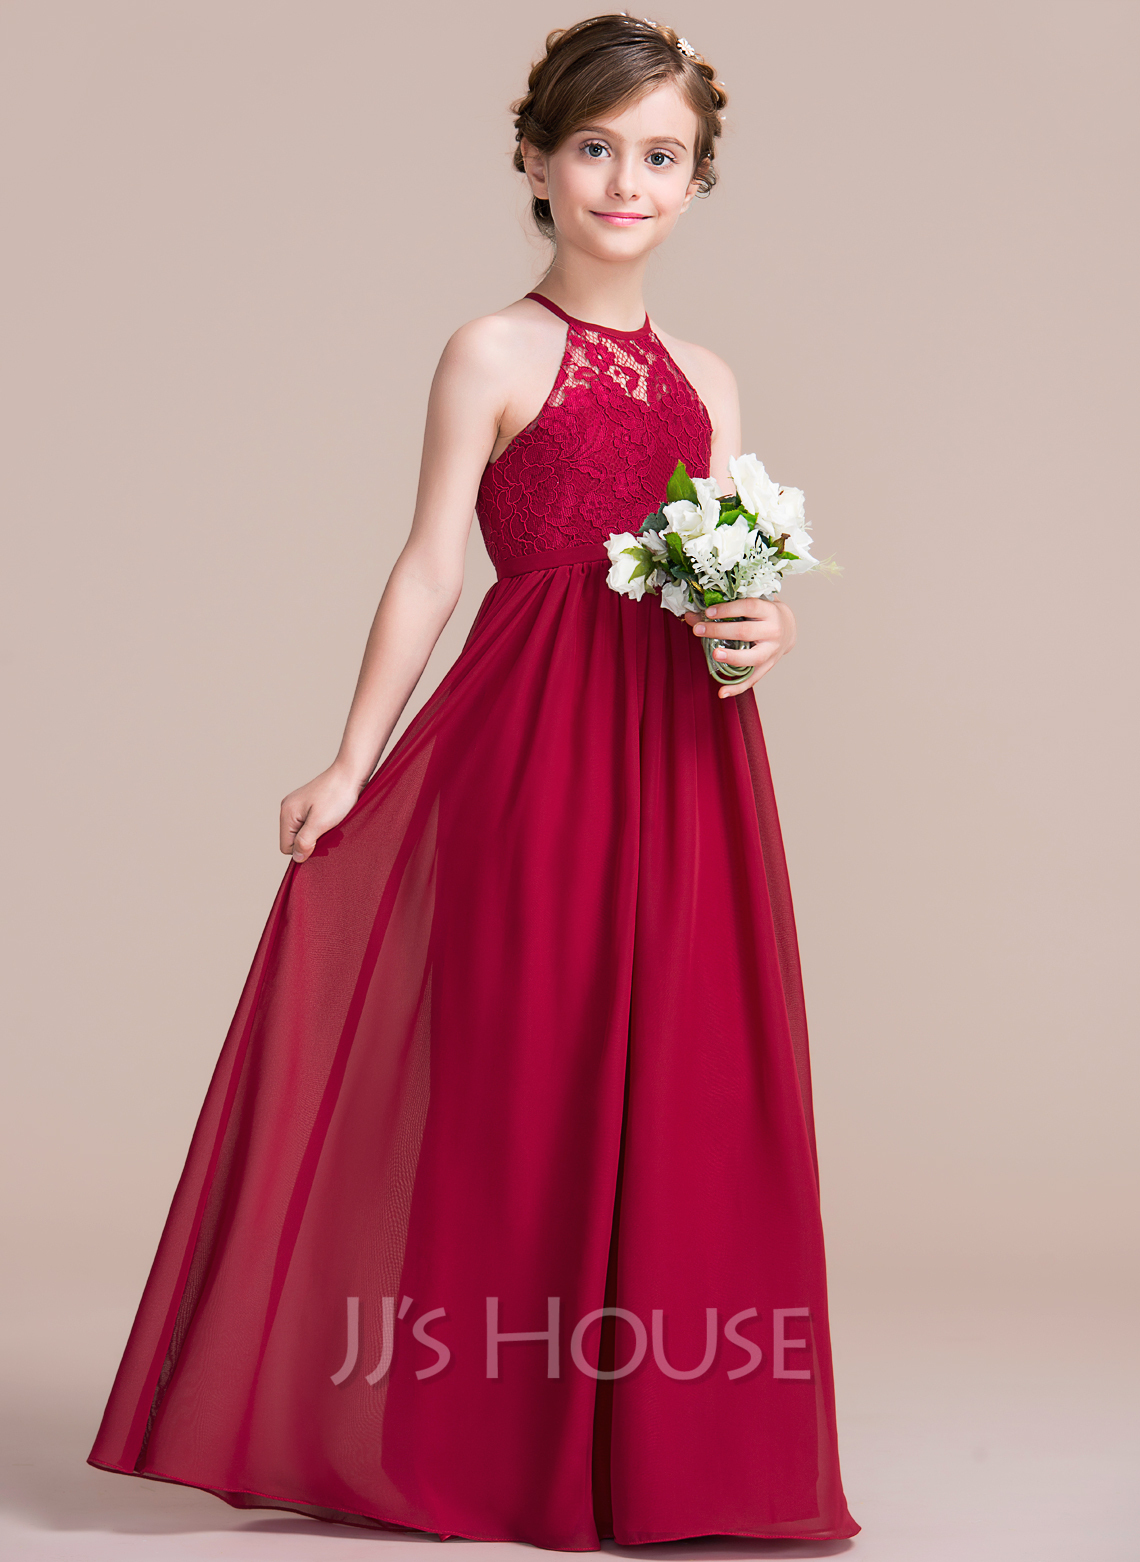 c2e152bcd179 A-Line Princess Scoop Neck Floor-Length Chiffon Junior Bridesmaid ...